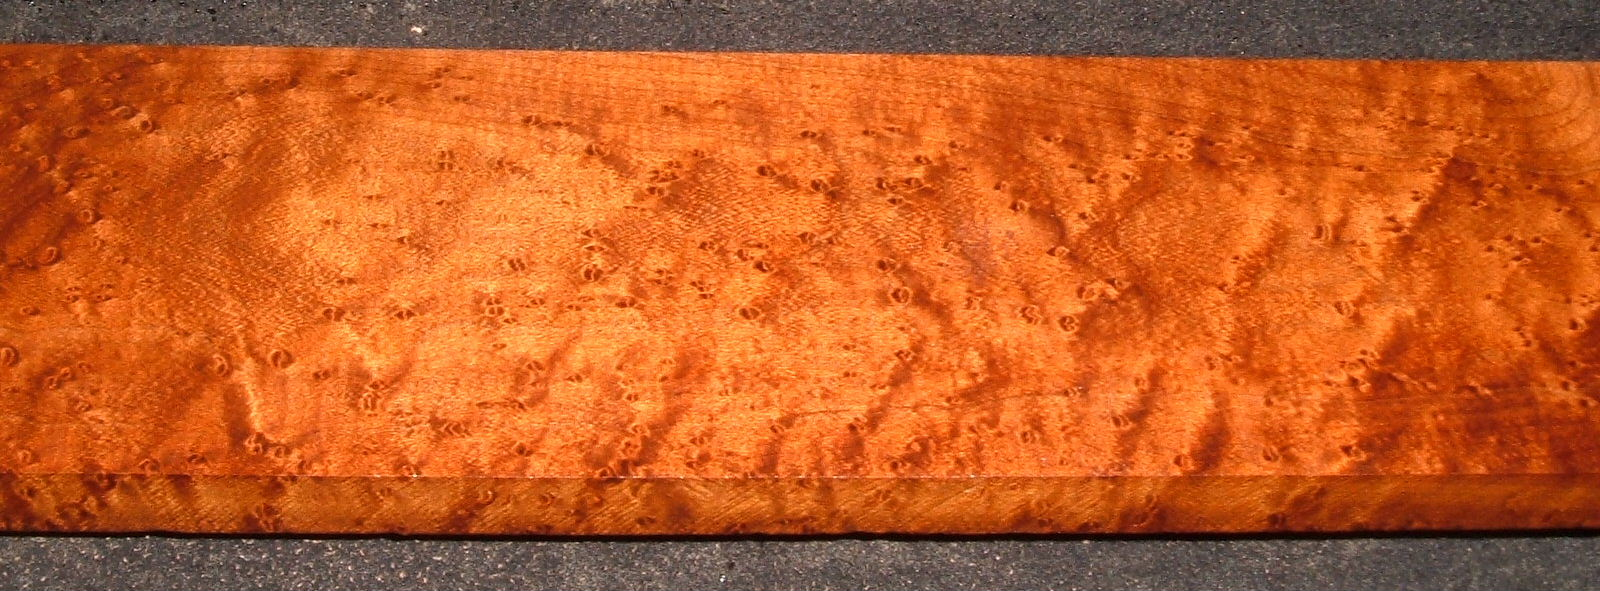 RBM2103-55, 13/16x3x35, Roasted Torrefied Quilted, Birdseye Hard Maple